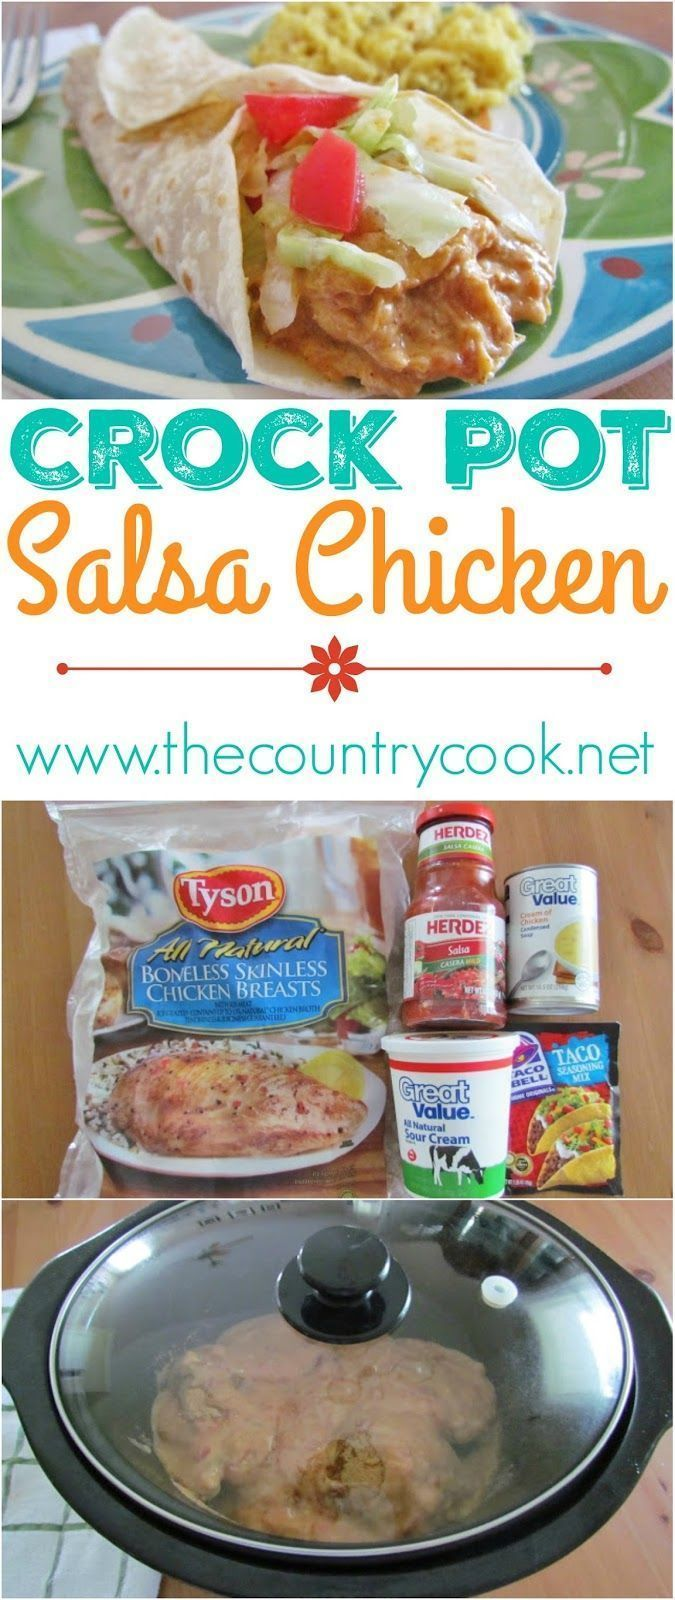 Click on picture to see this Crockpot Salsa Chicken recipe from The Country Cook! Hands down, one of my top favorite slow cooker recipes. Love, love, love this stuff! It's great in tacos, burritos, salads or tostadas. But I also love to add cooked pasta into the mixture and it becomes a whole meal by itself. So good! #easy #recipes #crockpot #slowcooker #chicken